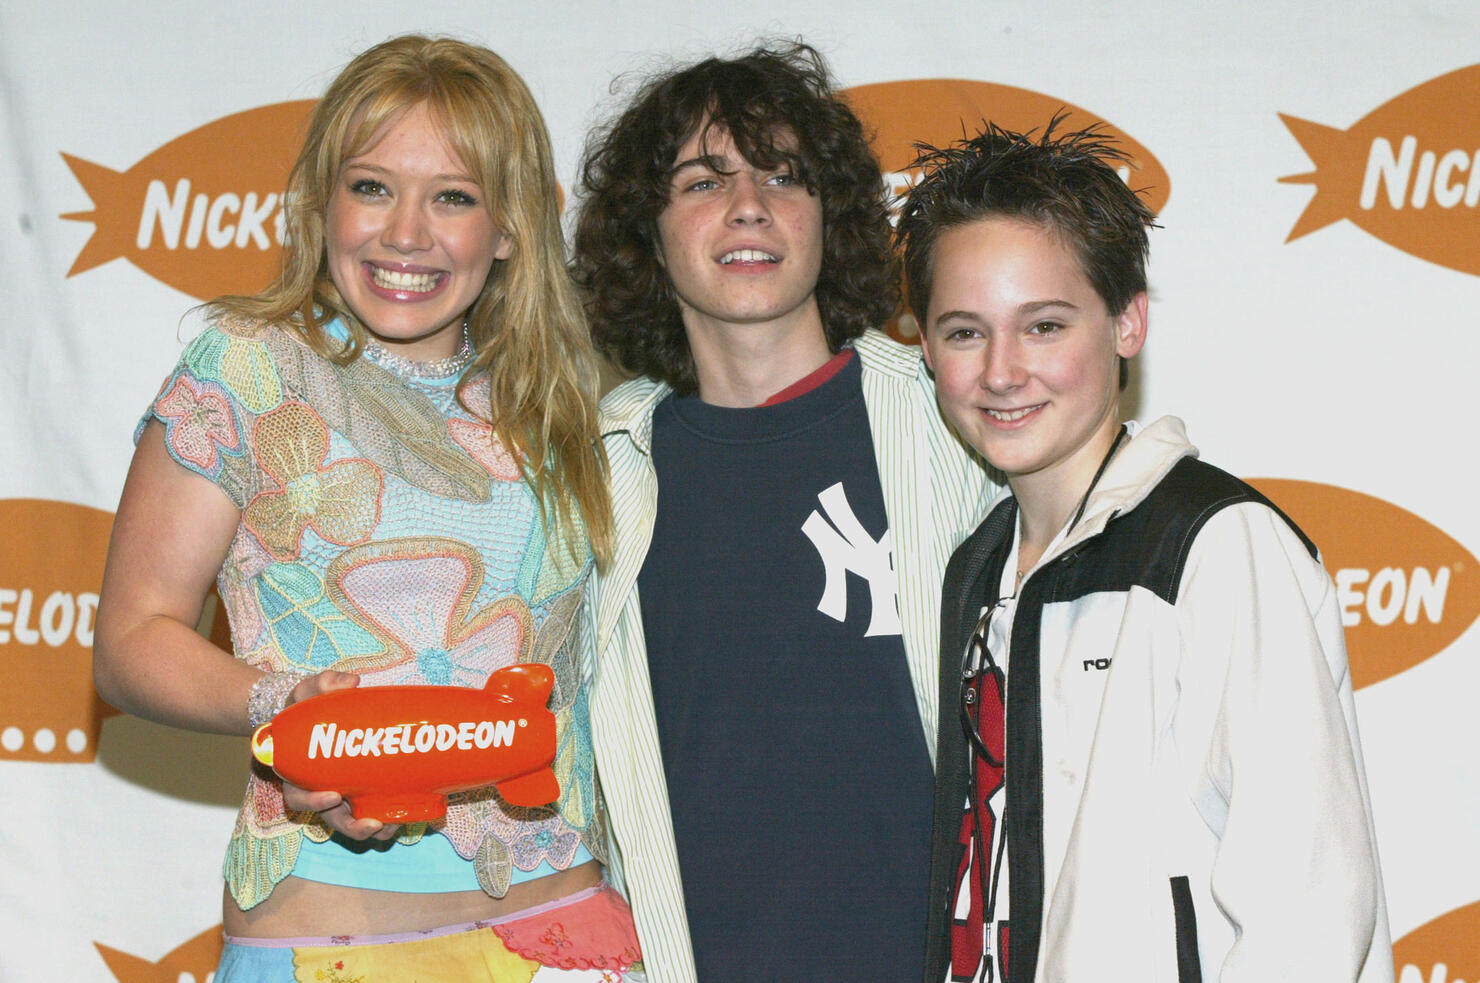 Nickelodeons 16th Annual Kids Choice Awards 2003 - Press Room